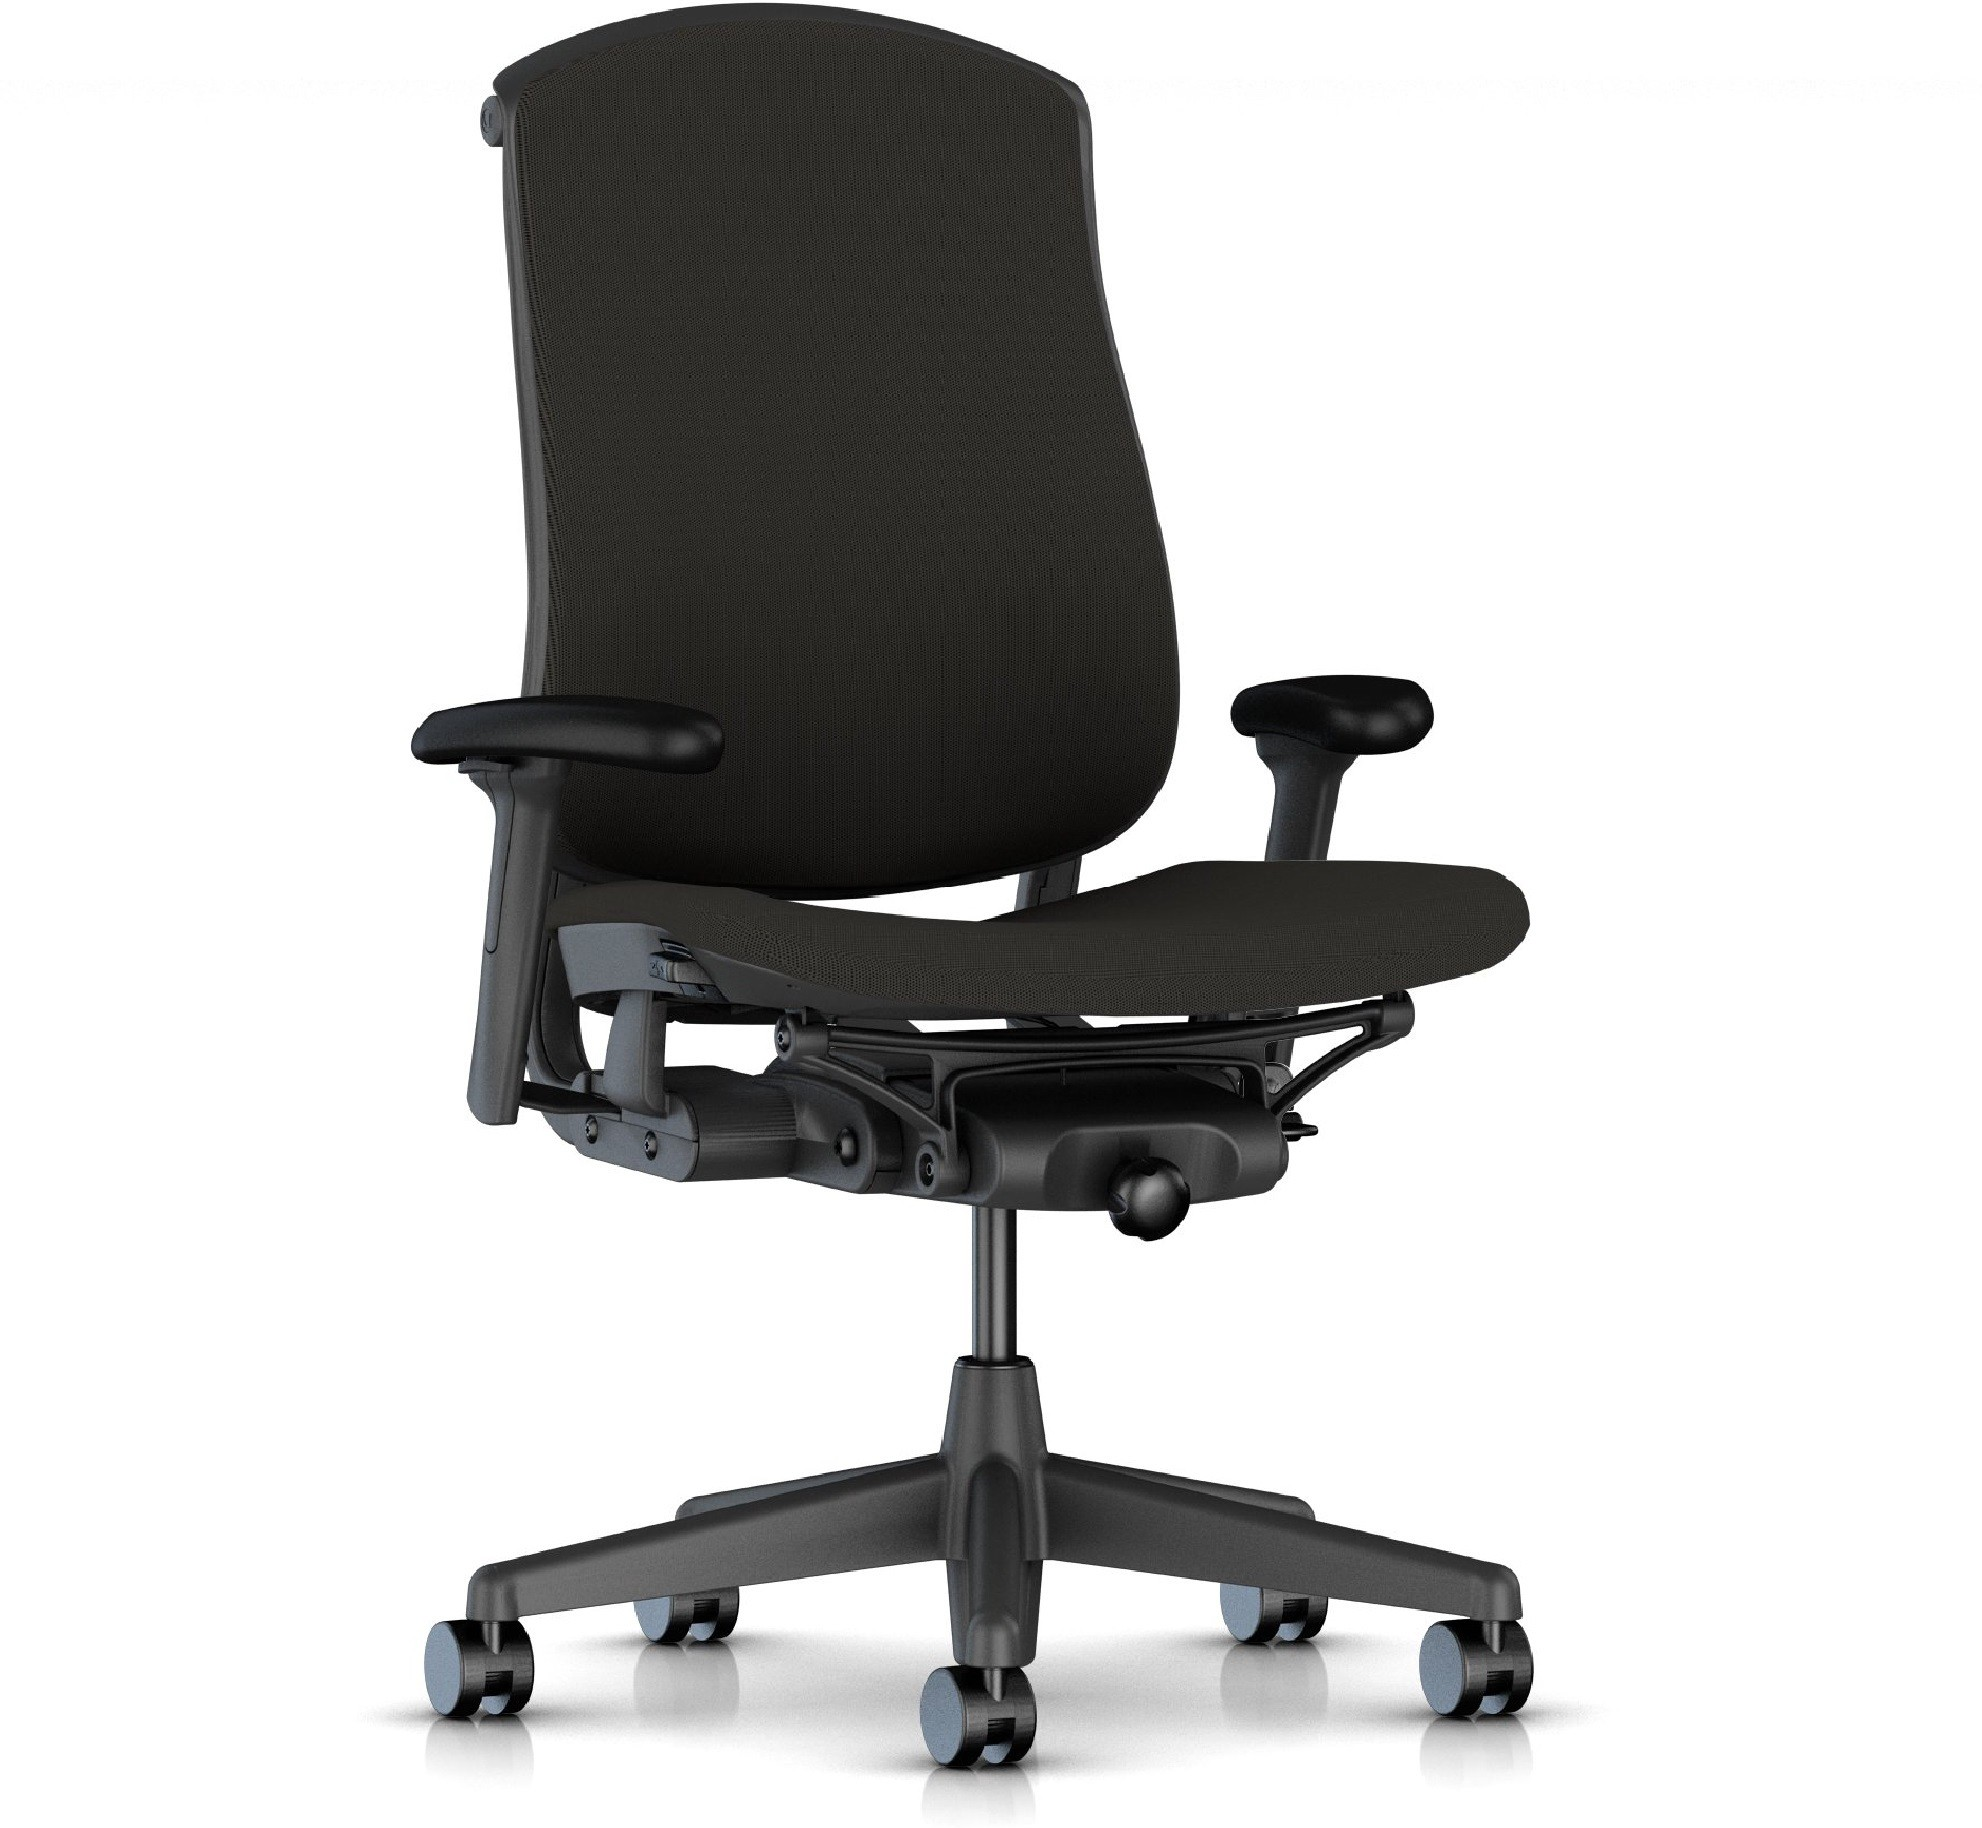 View HermanMiller Celle - Graphite Upholstered Cellular back with Graphite upholstered Seat Cushion : Cellular Suspension NA Office Chair(Black) Furniture (HermanMiller)